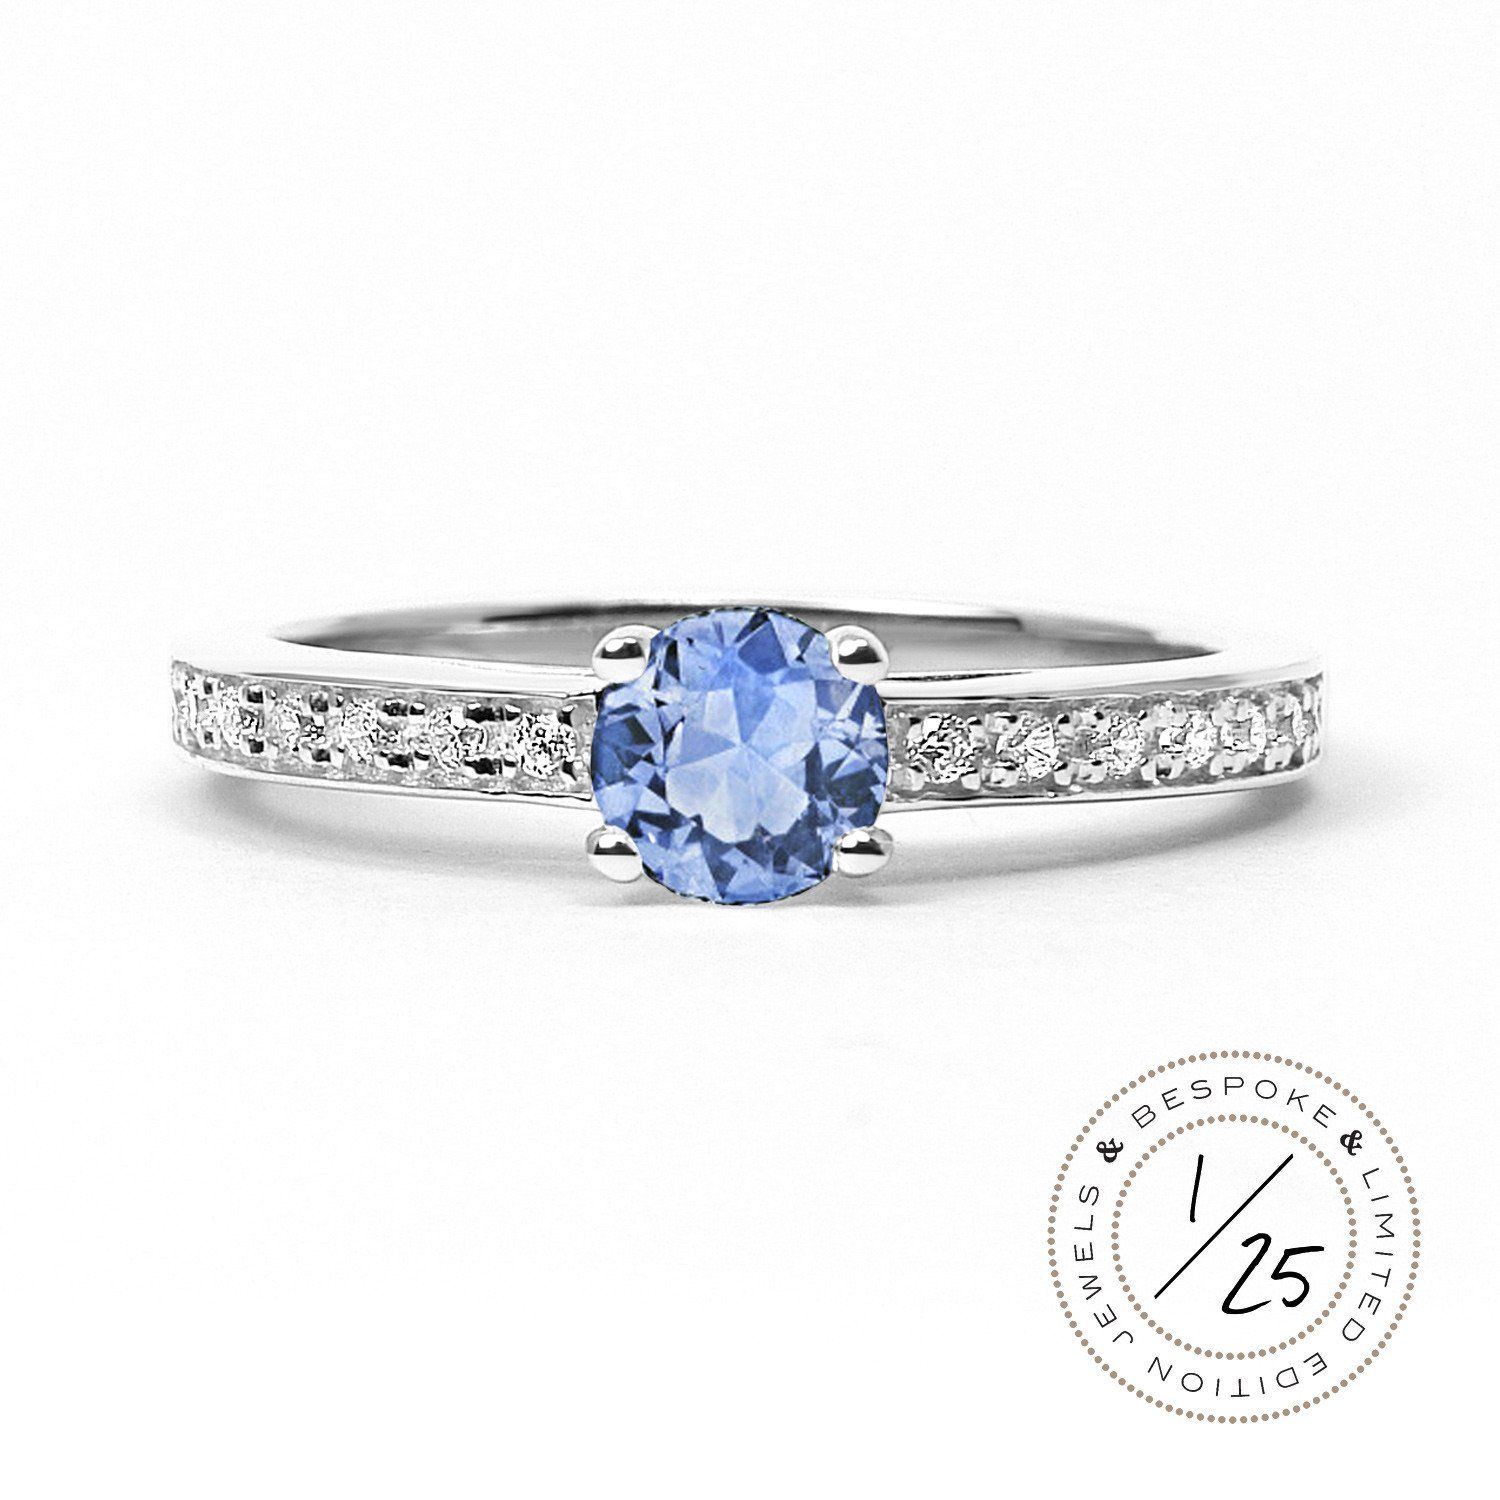 ring diamond eternity engagement campbell oval blue cut white ireland gold specialists products sapphire light